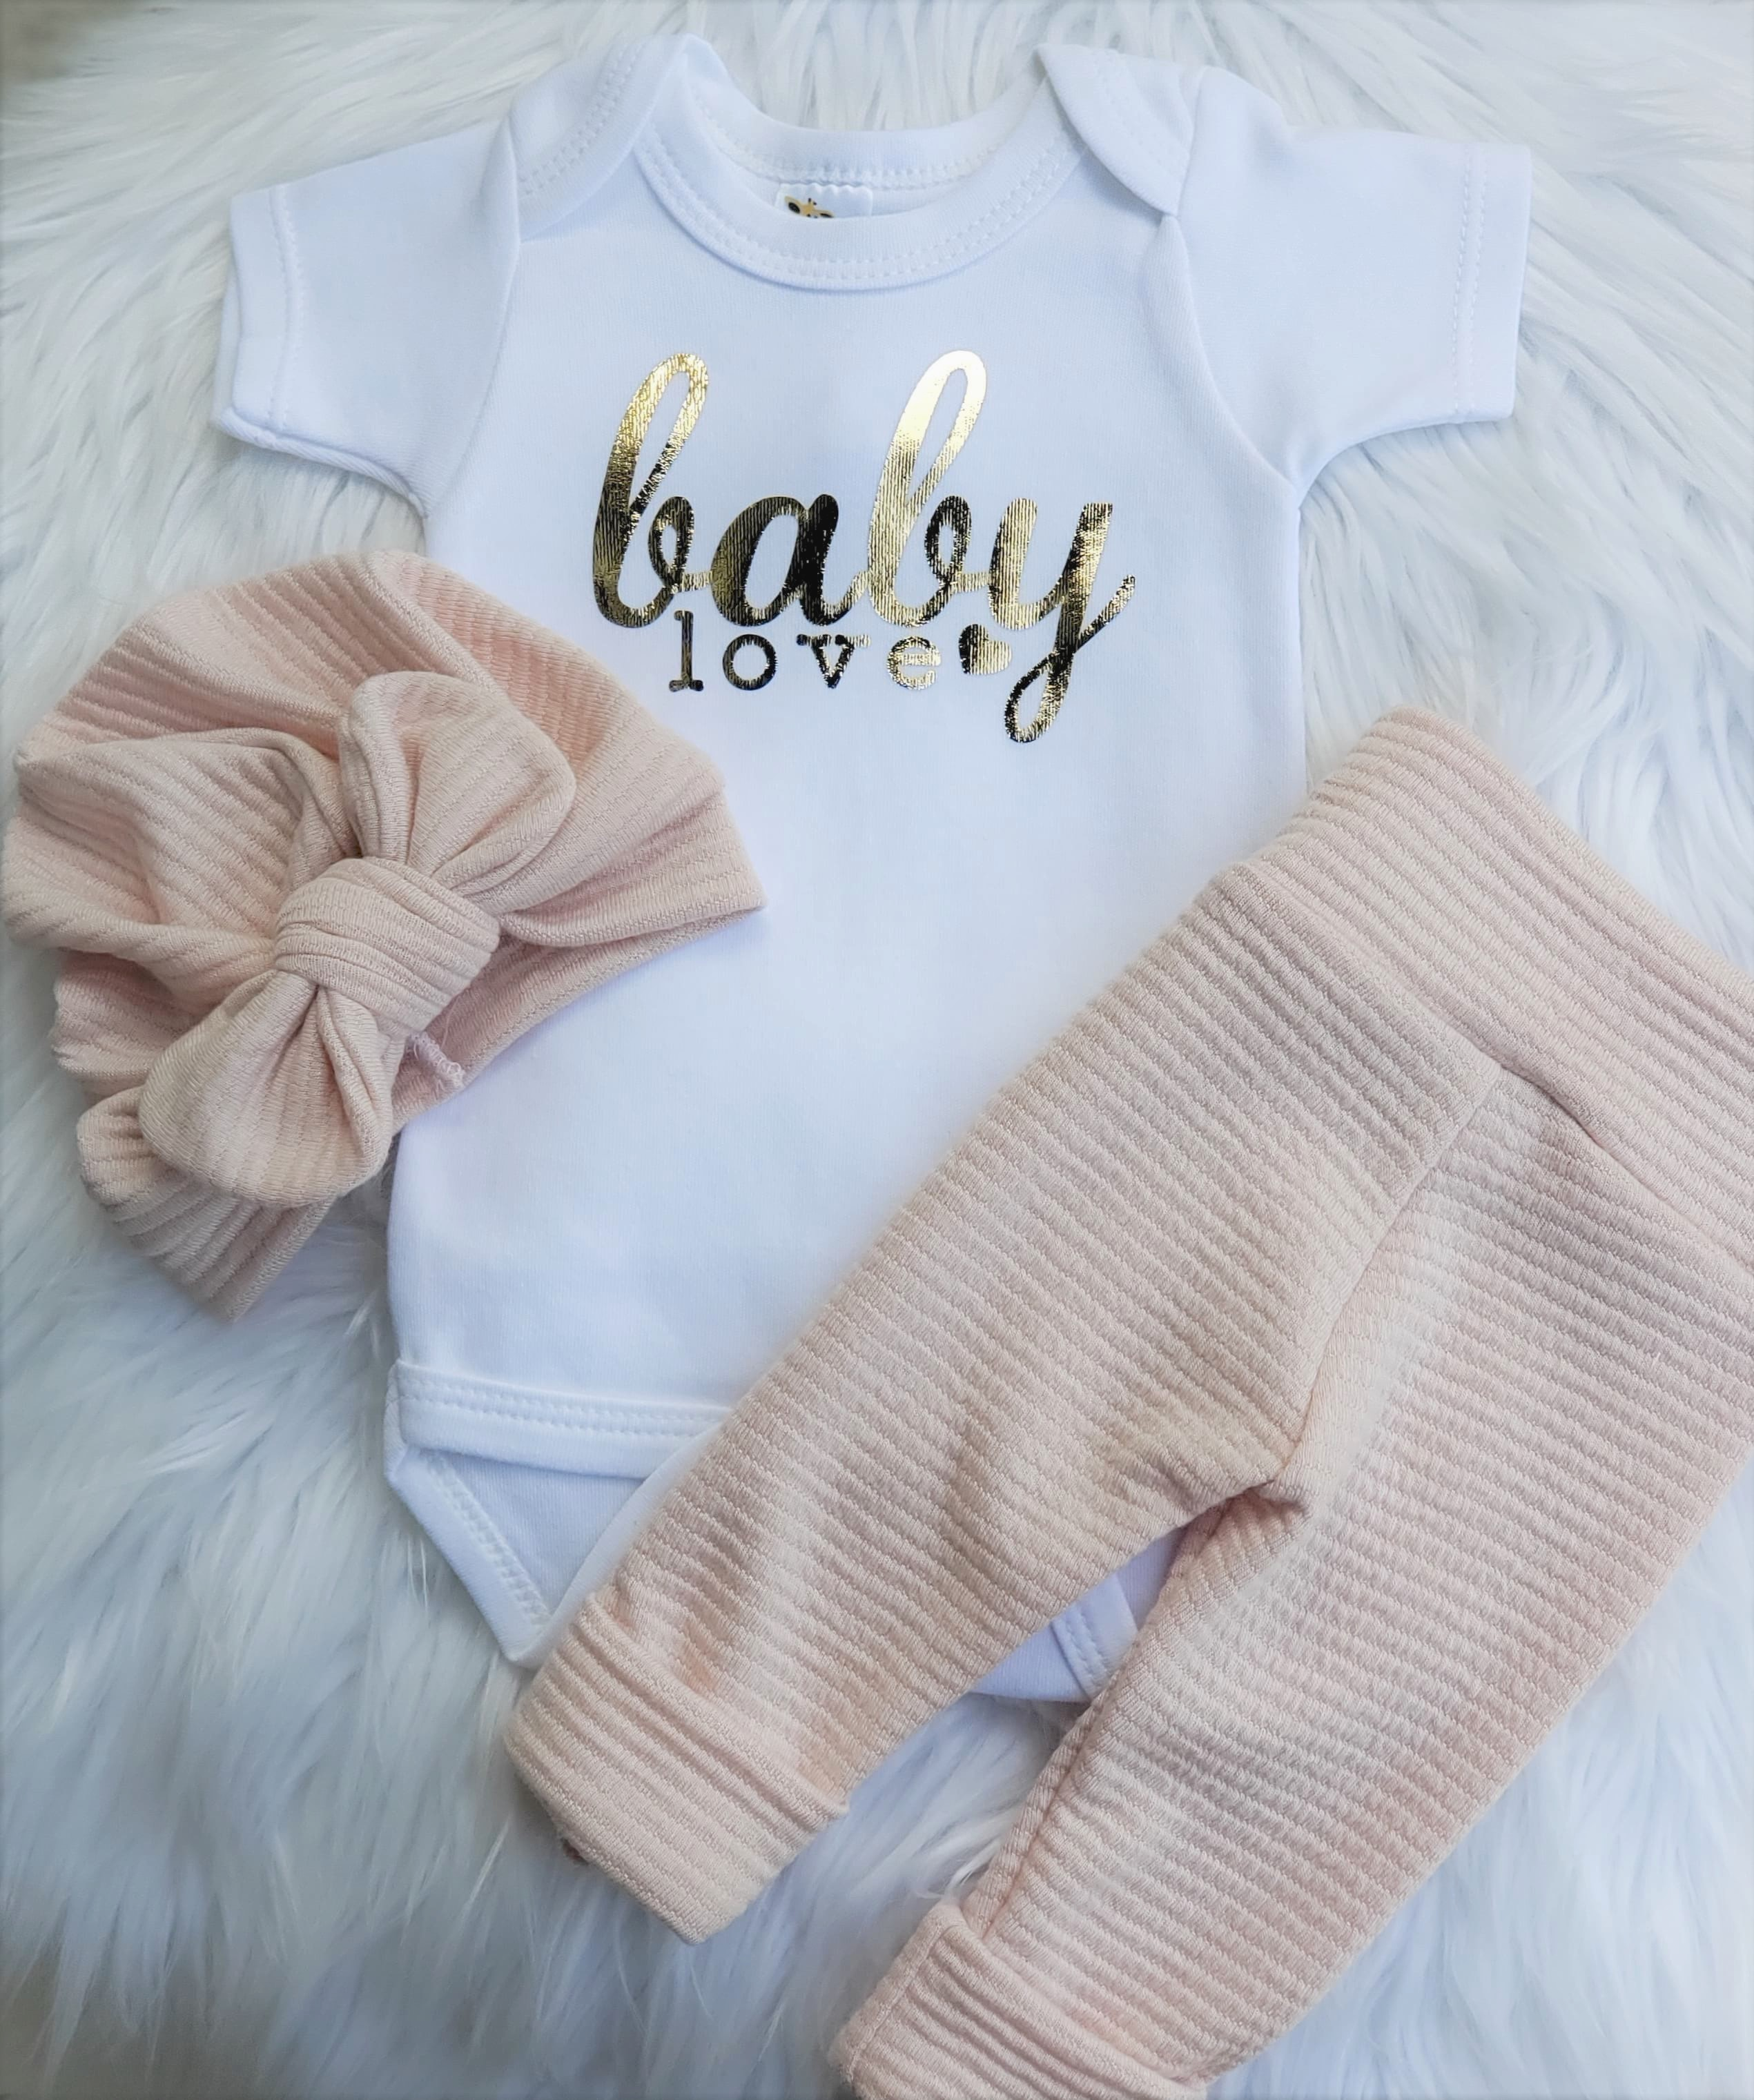 Baby Love Gold Foil Onesie Shop Baby Boutique Outfits That Are Handmade In The Usa At Sugarbabies